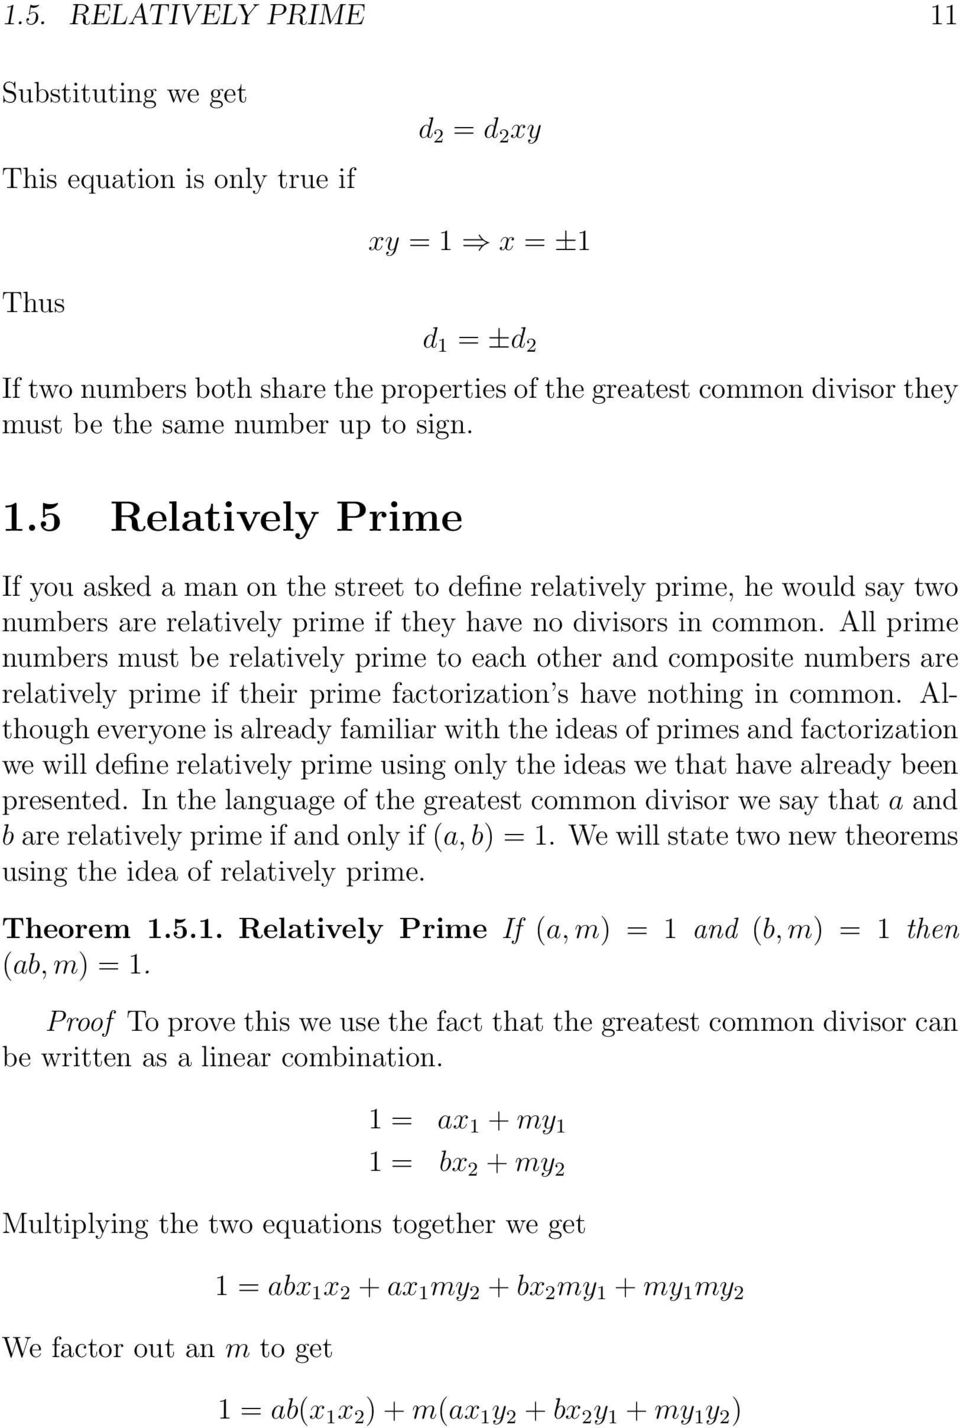 All prime numbers must be relatively prime to each other and composite numbers are relatively prime if their prime factorization s have nothing in common.